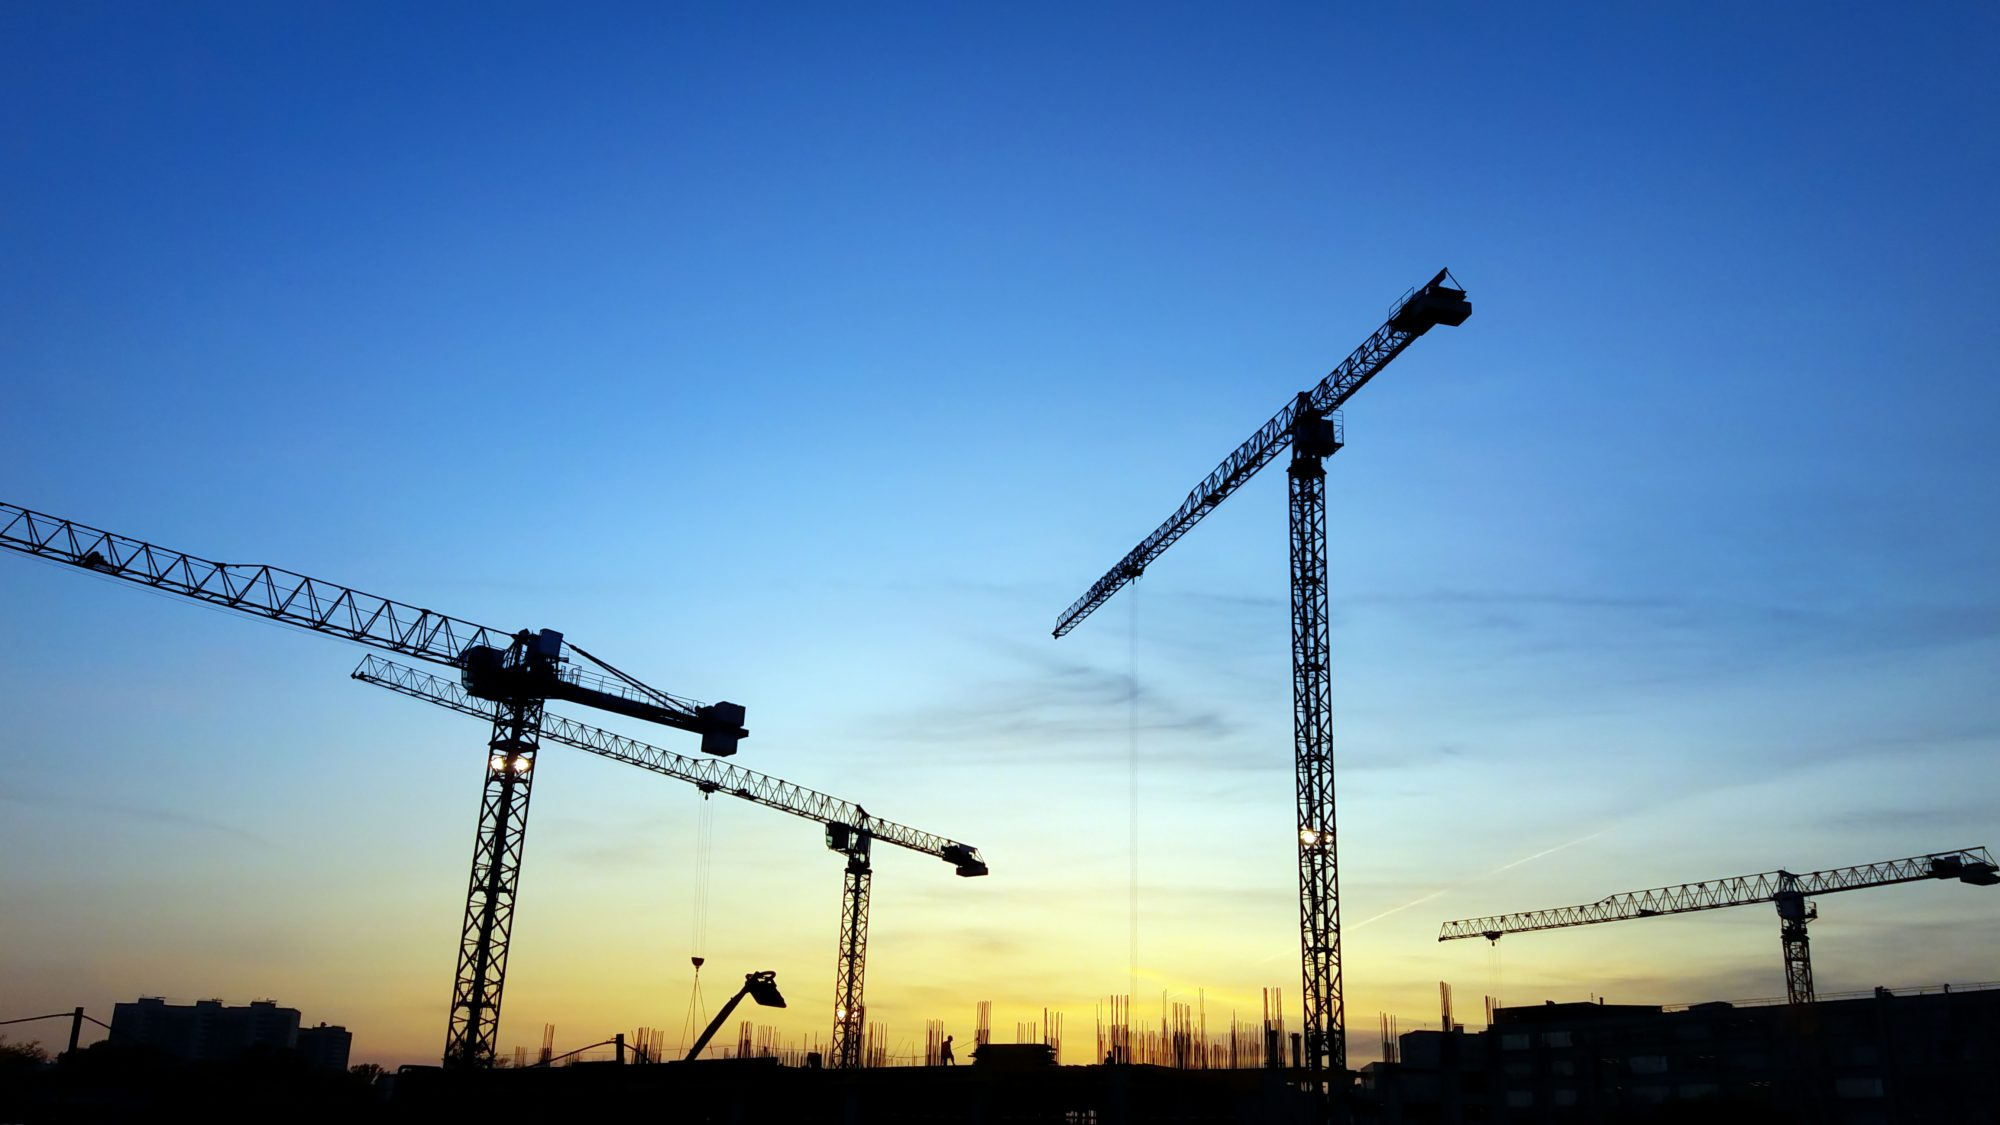 Reducing construction's ecological footprint